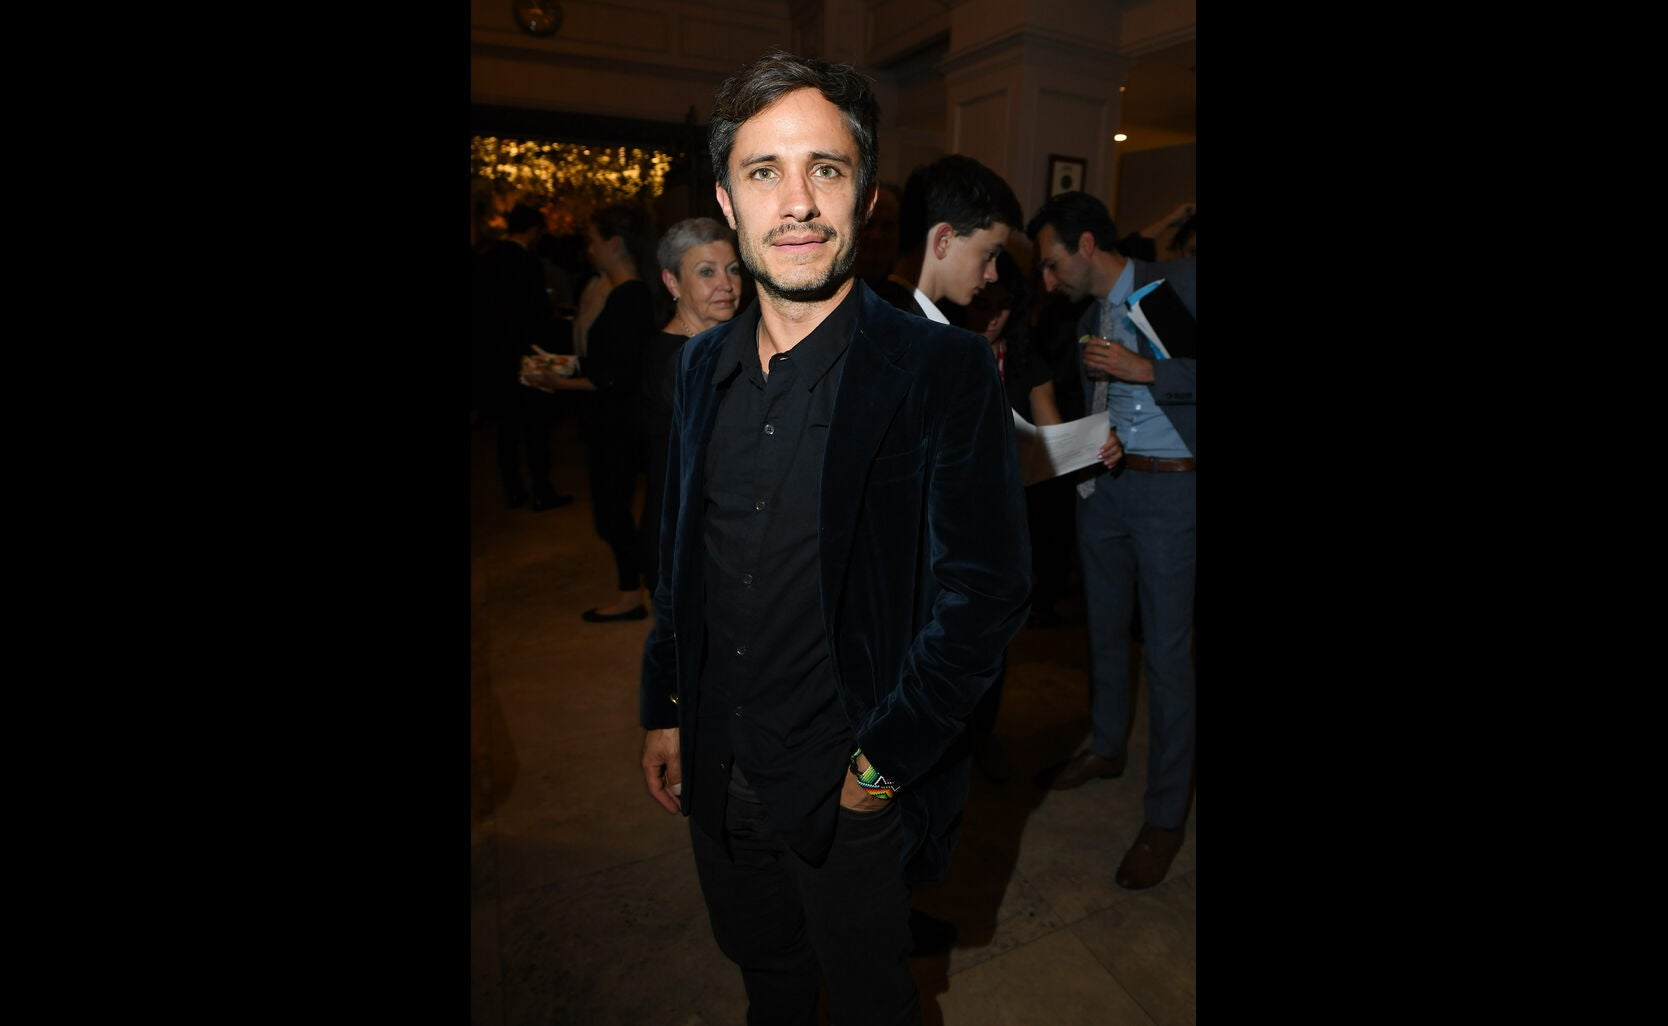 Golden Globe winner Gael Garcia Bernal at the HFPA/InStyle party, Toronto 2016